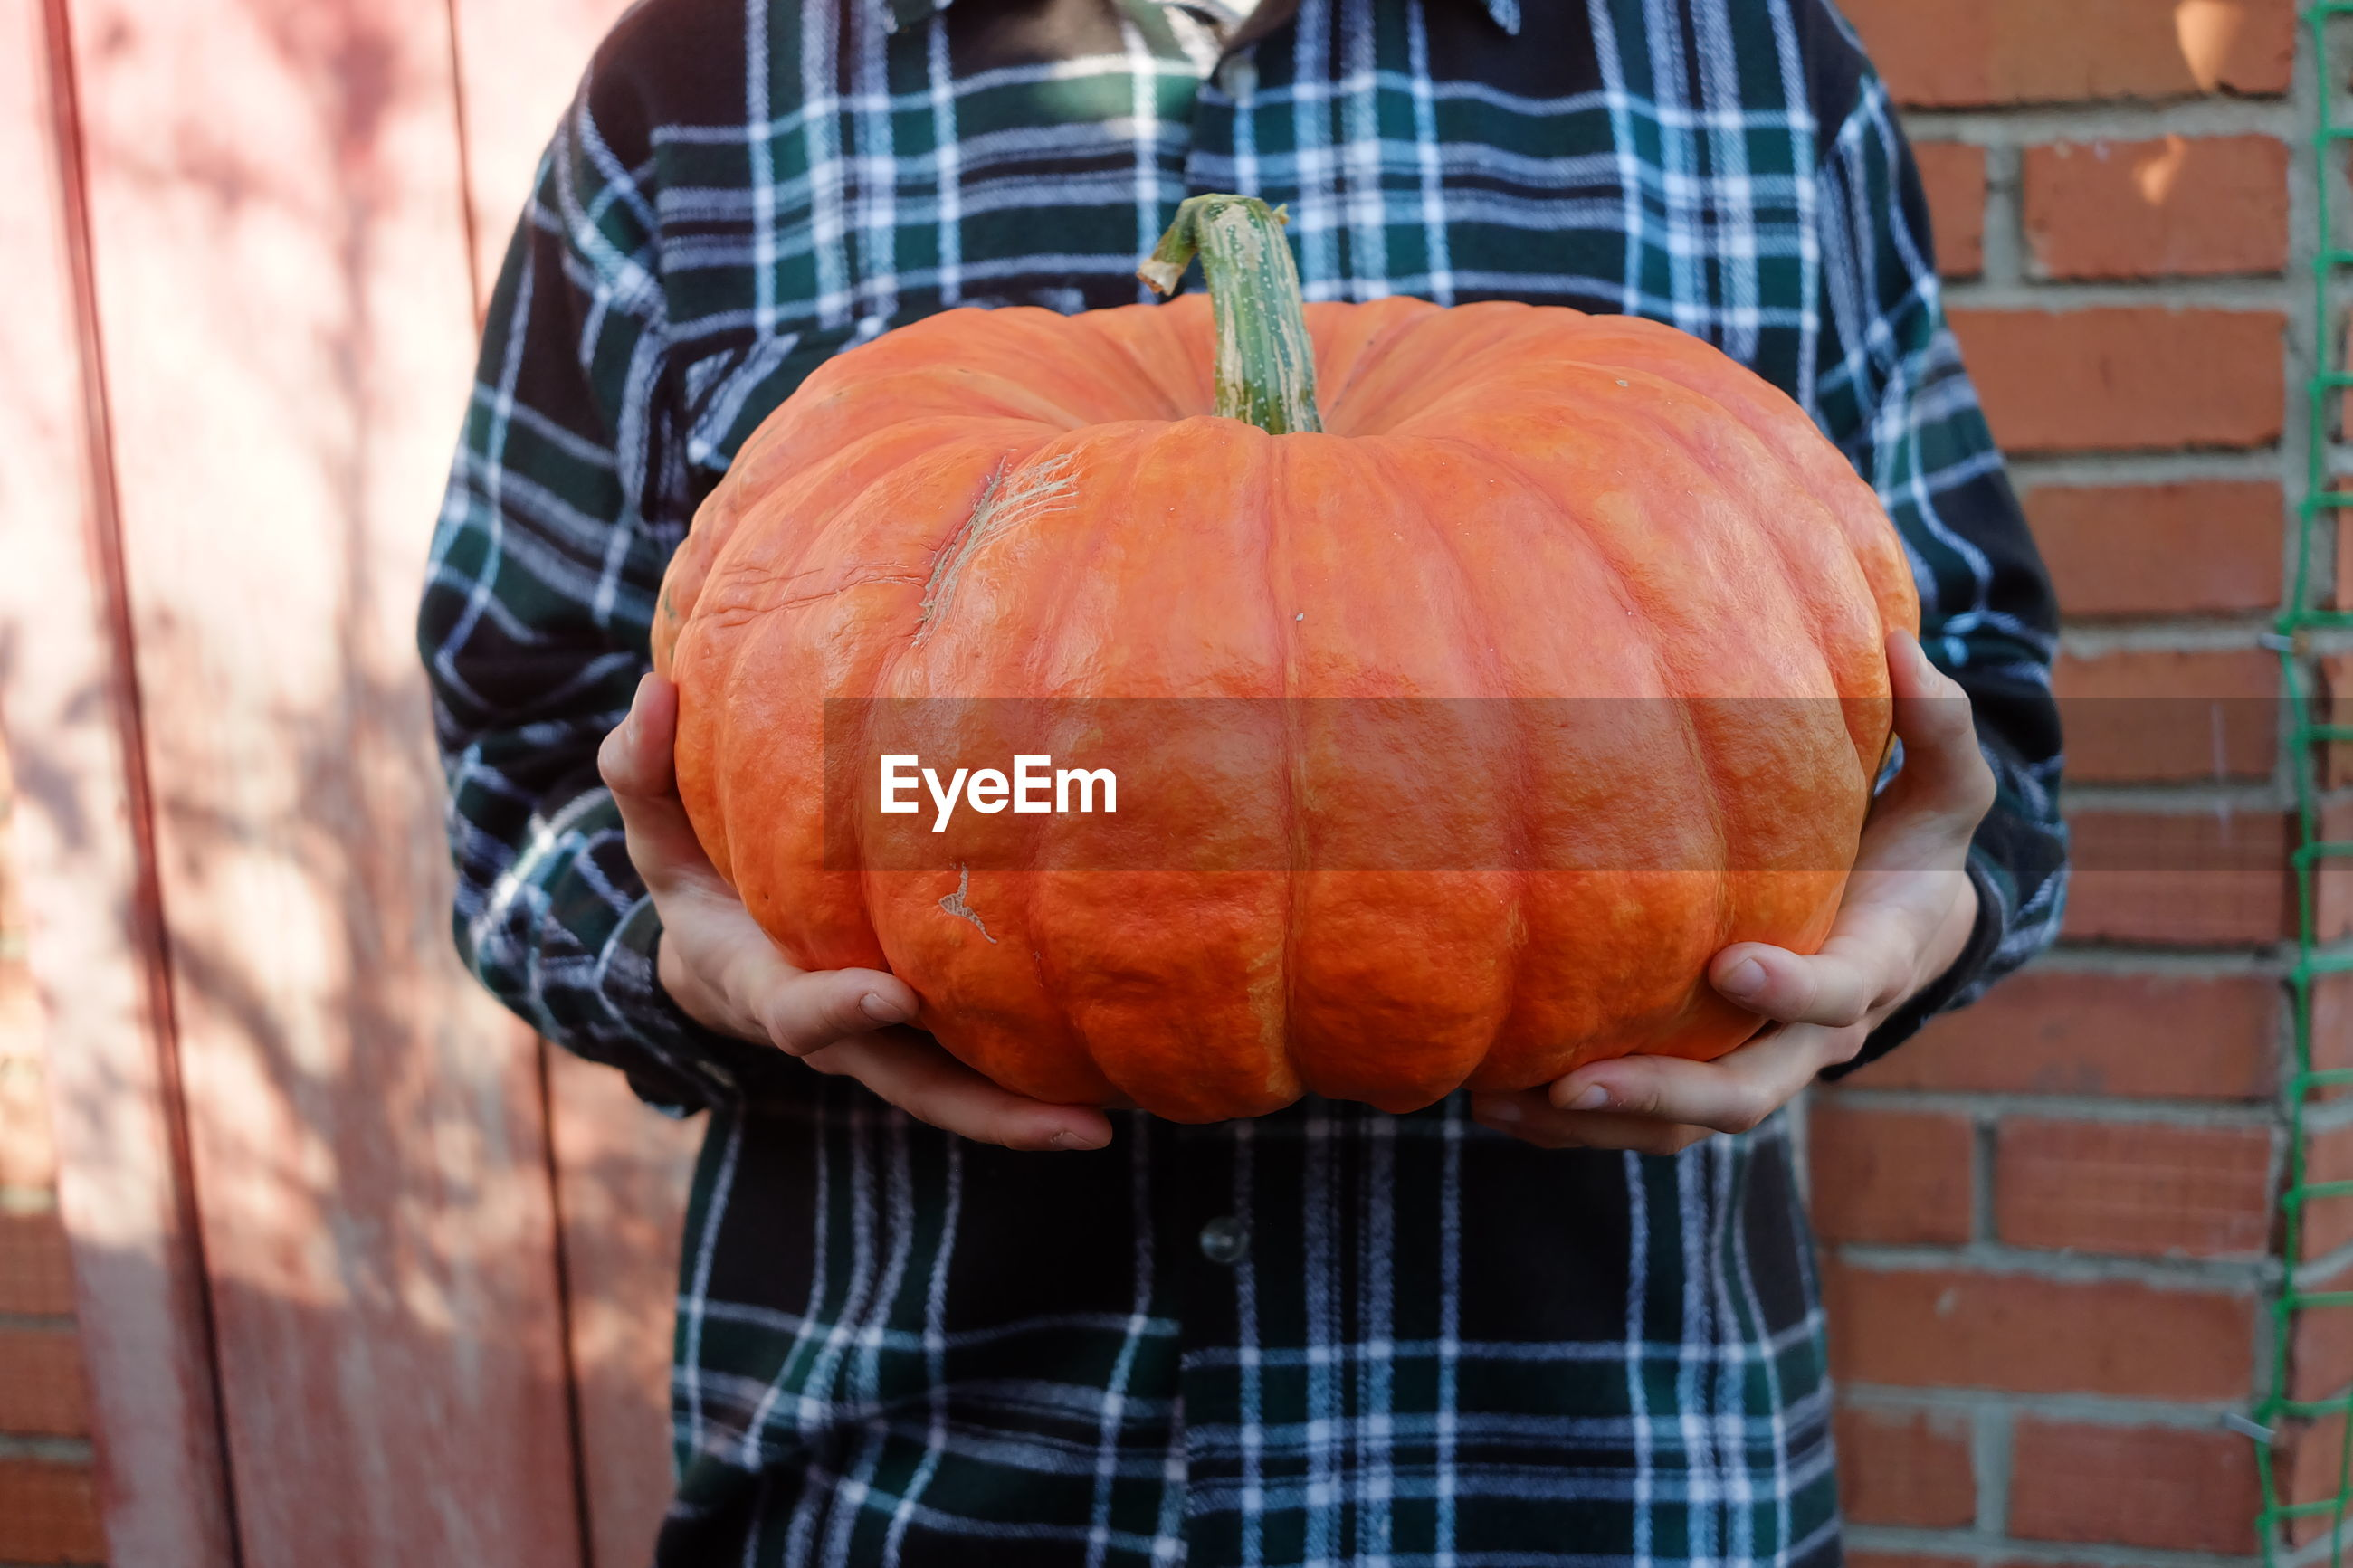 MIDSECTION OF MAN HOLDING PUMPKIN WHILE STANDING OUTDOORS